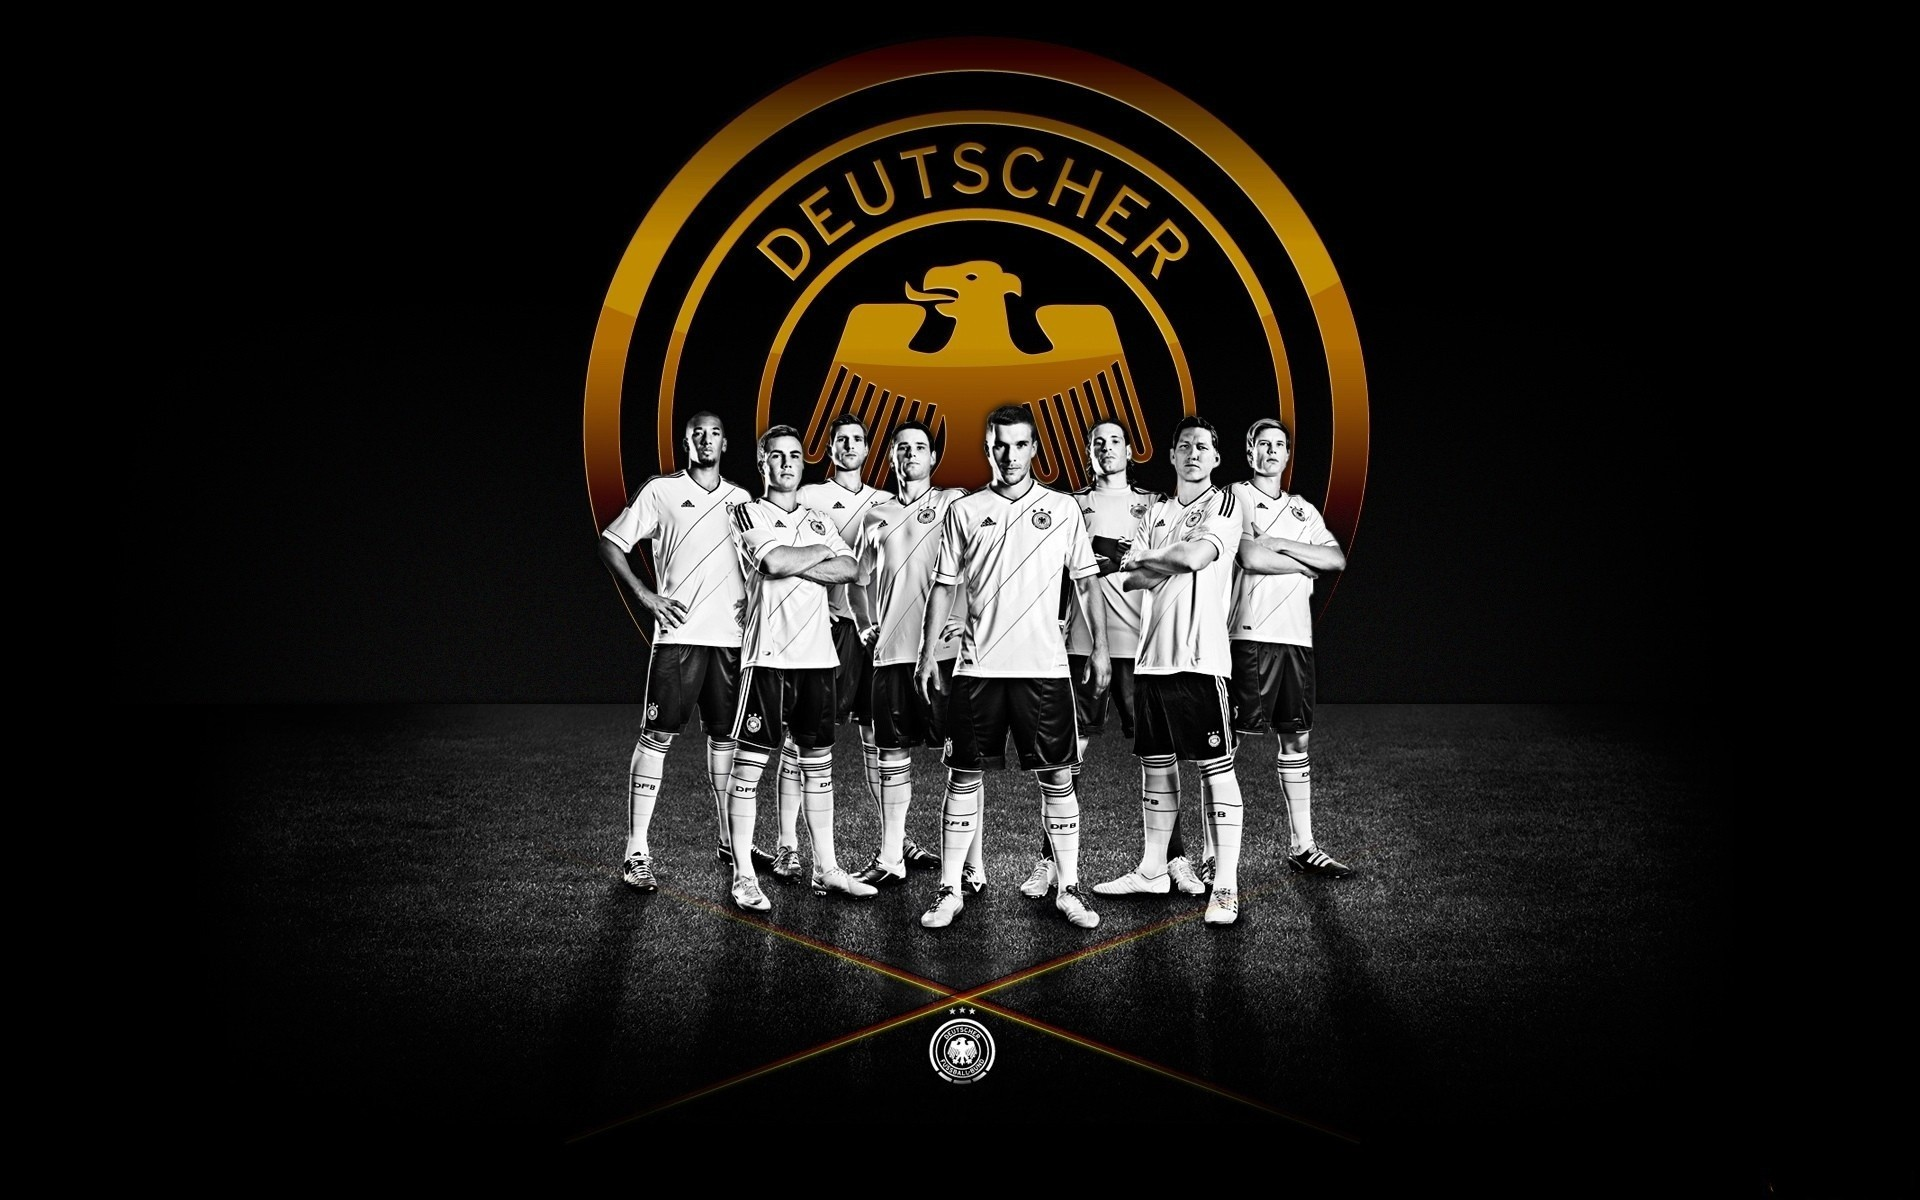 1920x1200 Soccer Team German Wallpaper